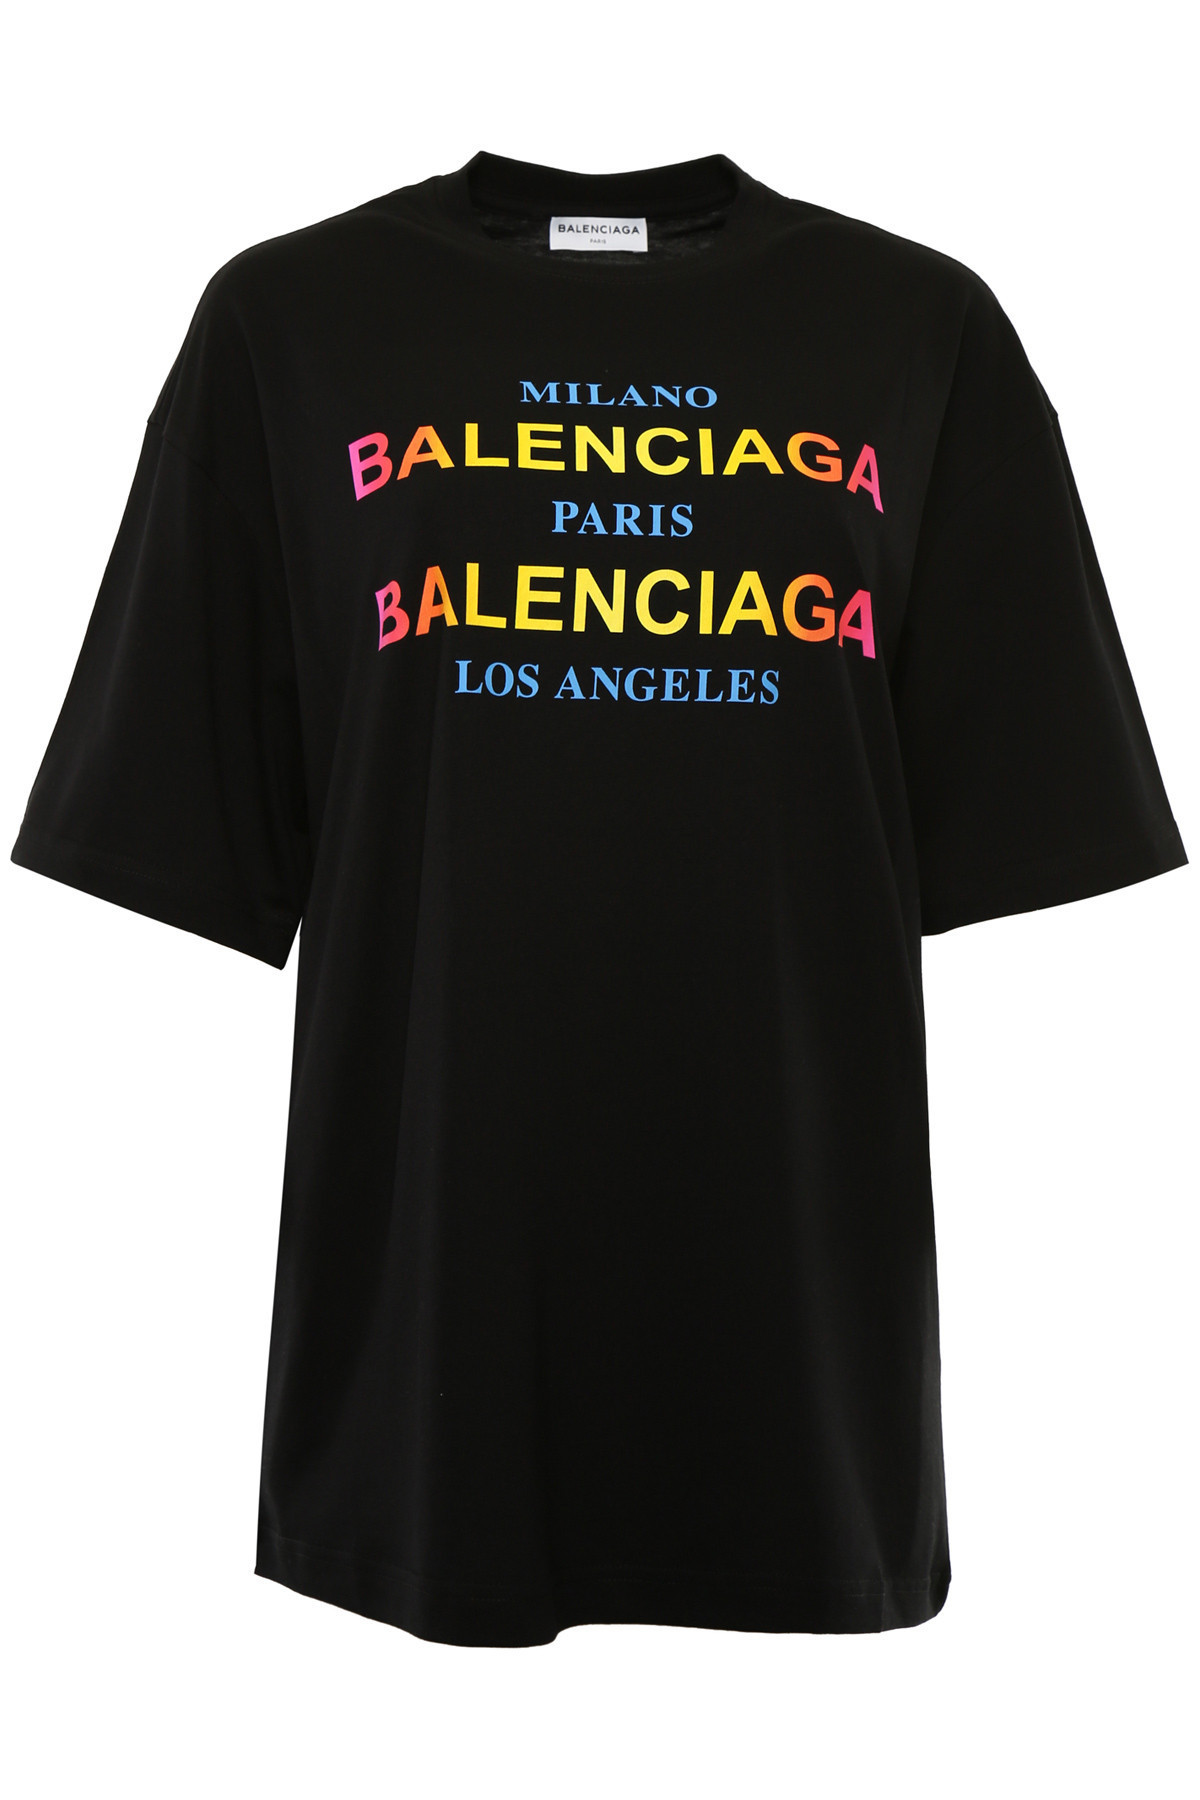 BALENCIAGA Milano Paris Los Angeles T-Shirt